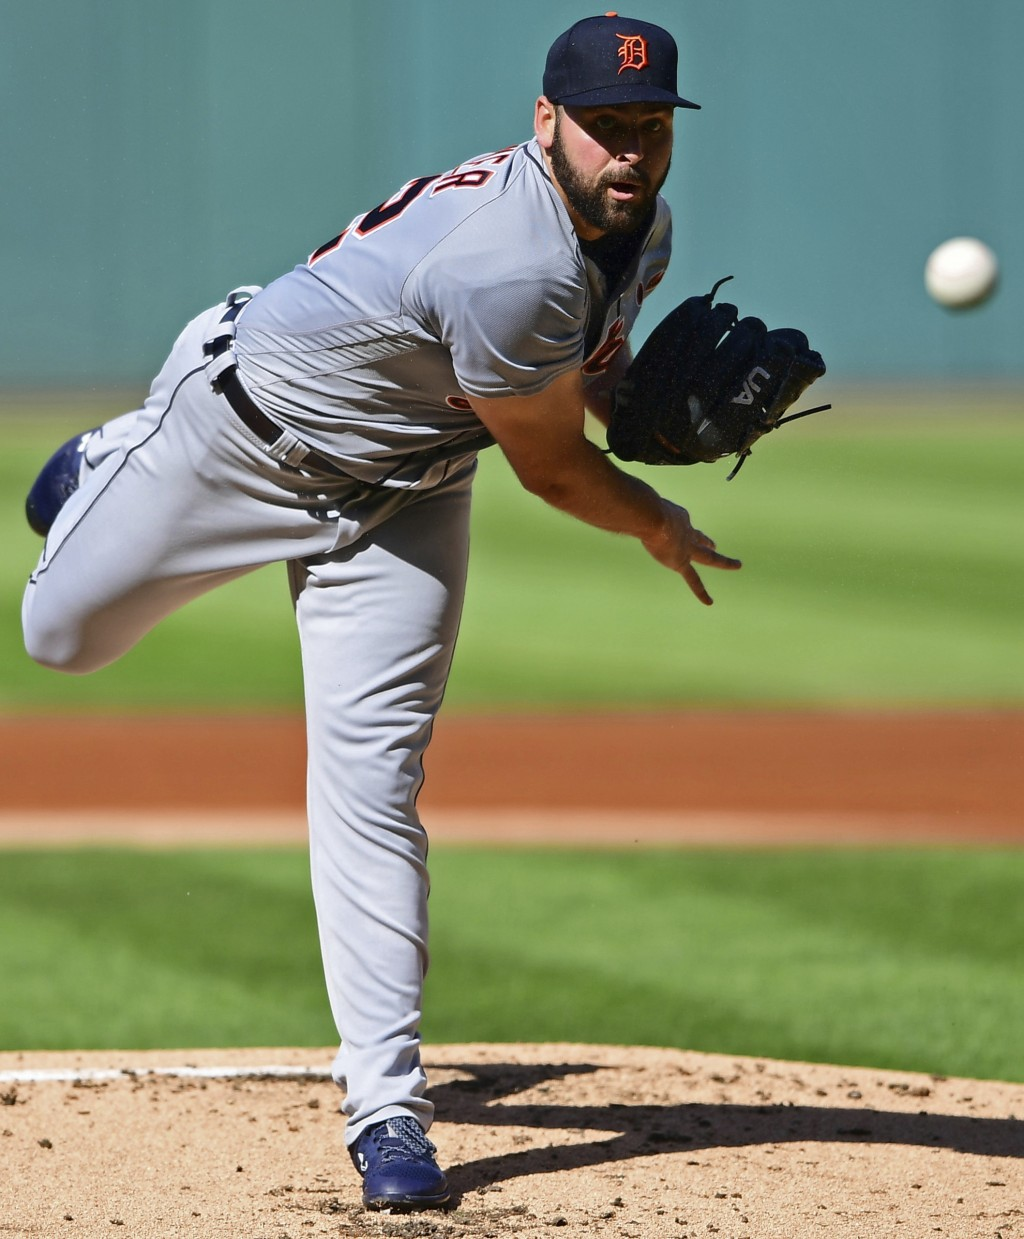 Detroit Tigers starting pitcher Michael Fulmer delivers in the first inning of a baseball game against the Cleveland Indians, Saturday, Sept. 15, 2018